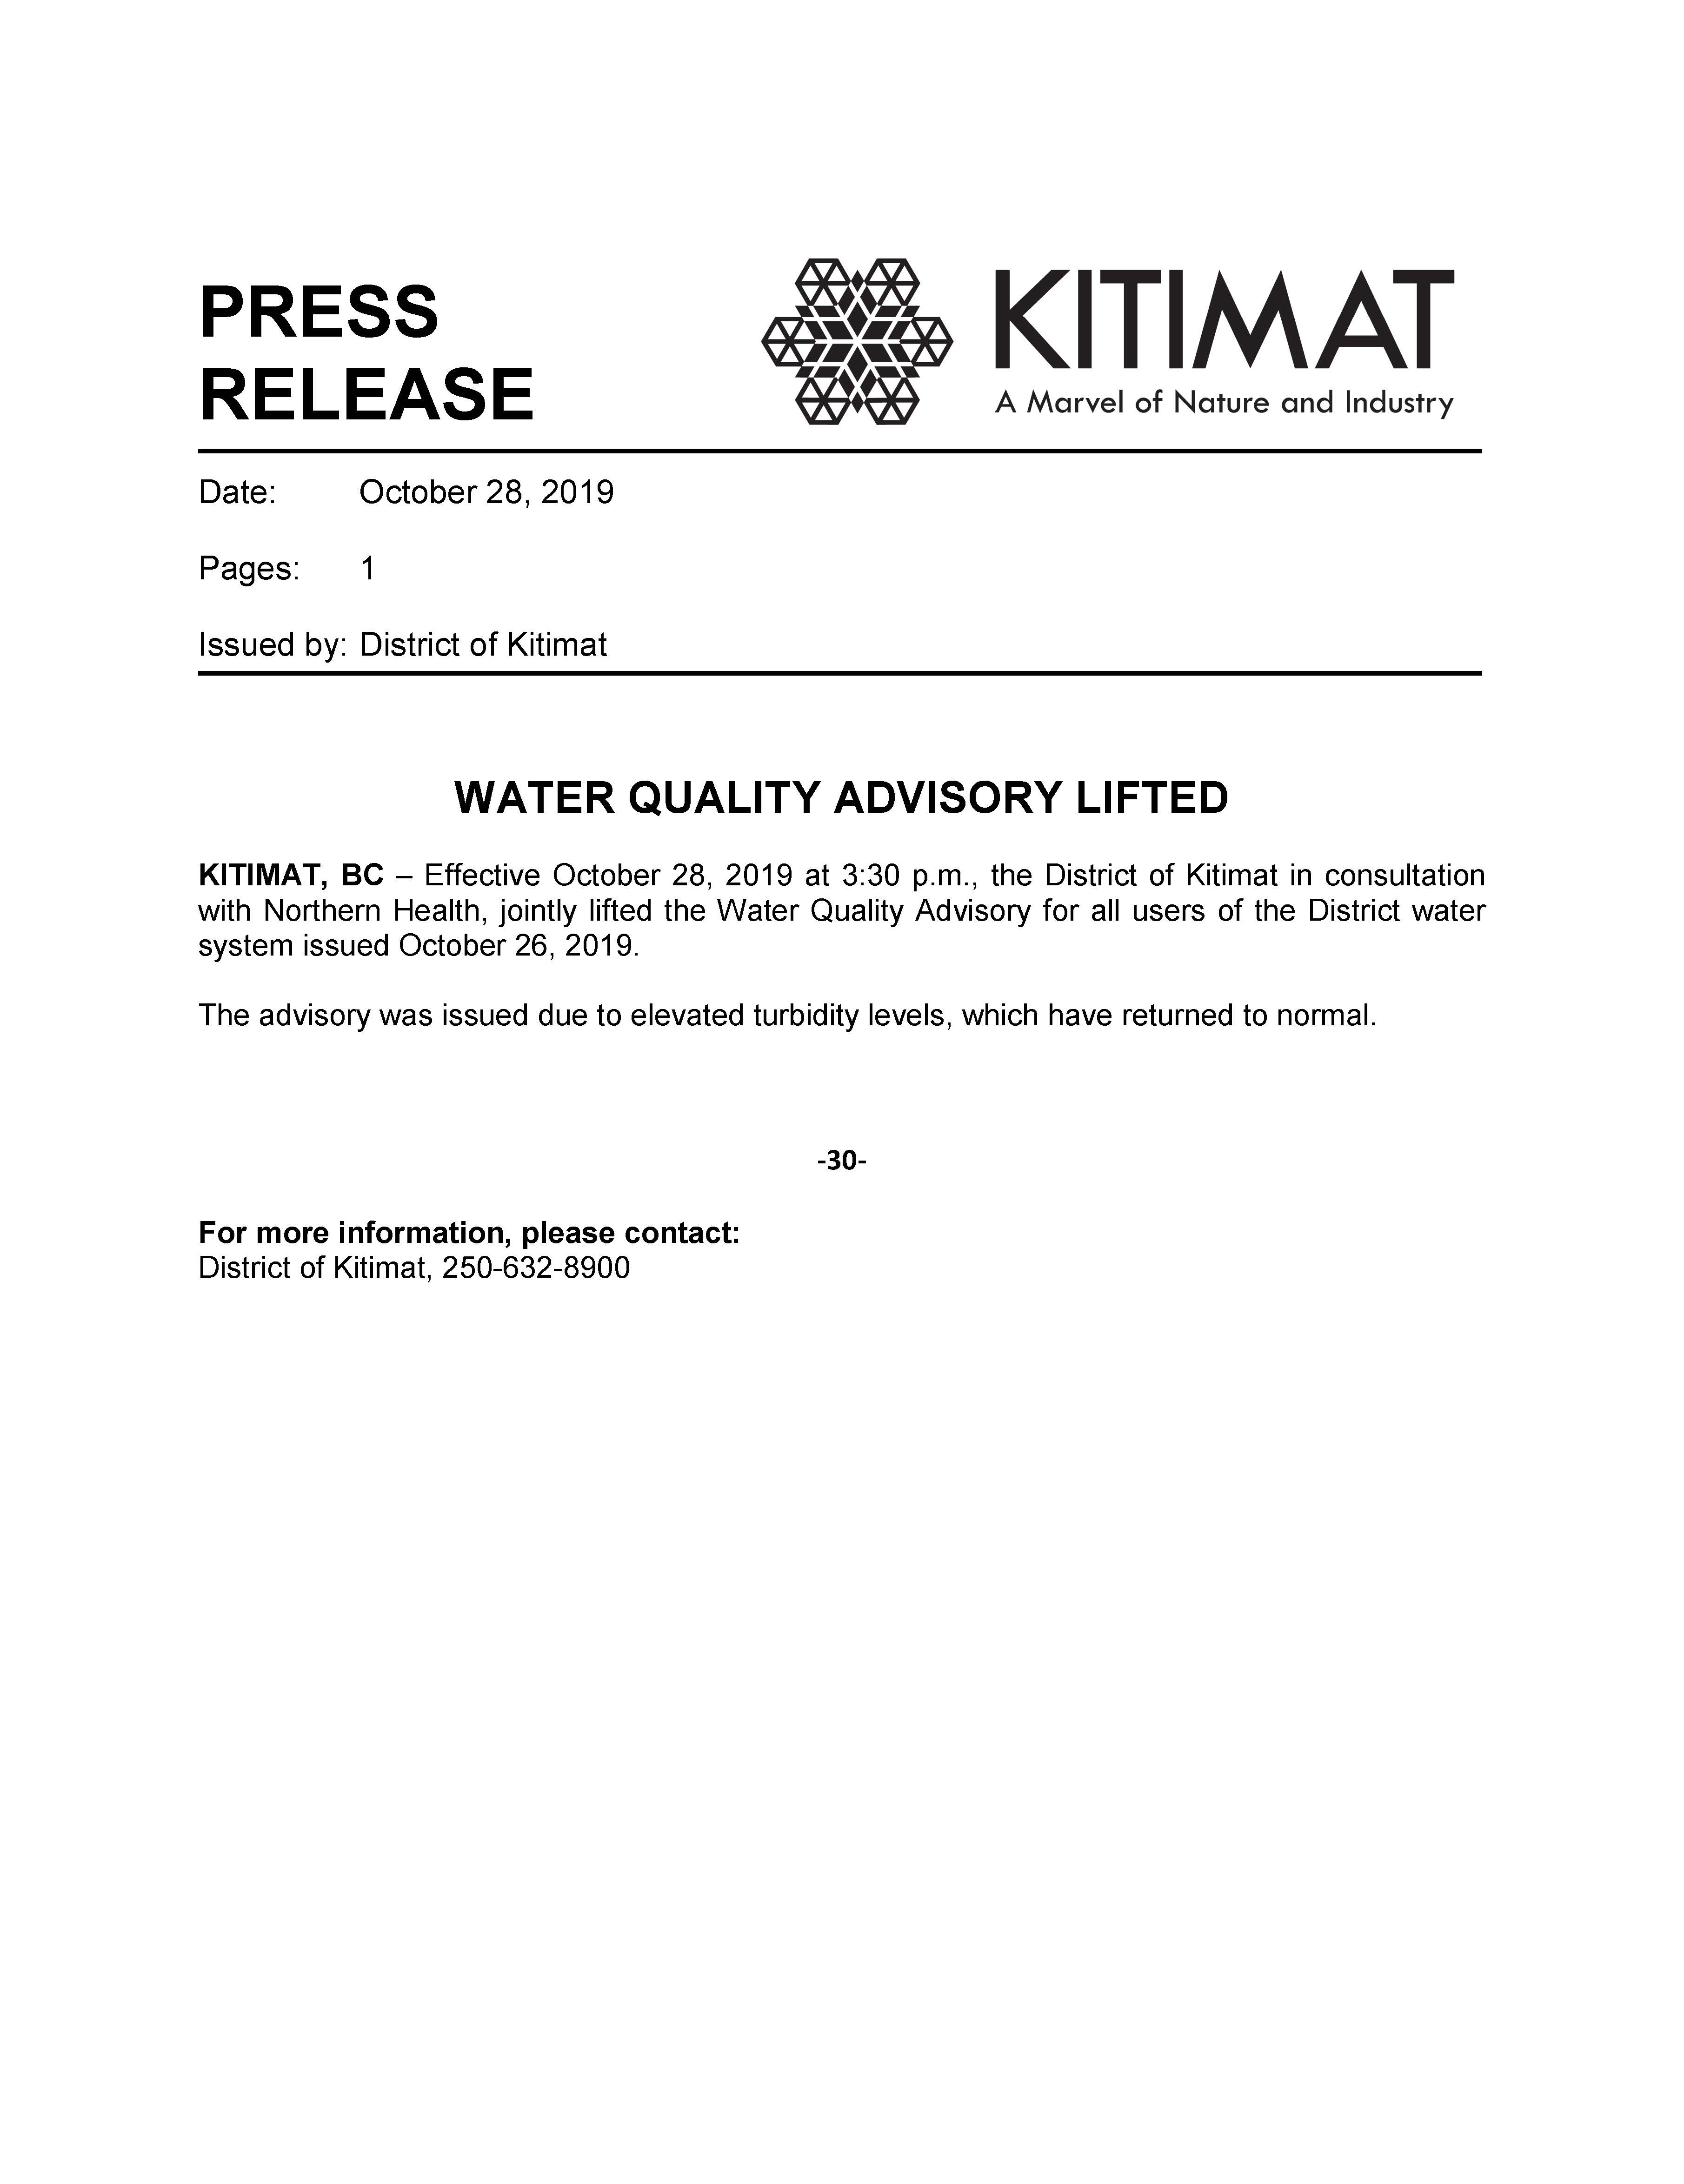 Water Quality Advisory Lifted